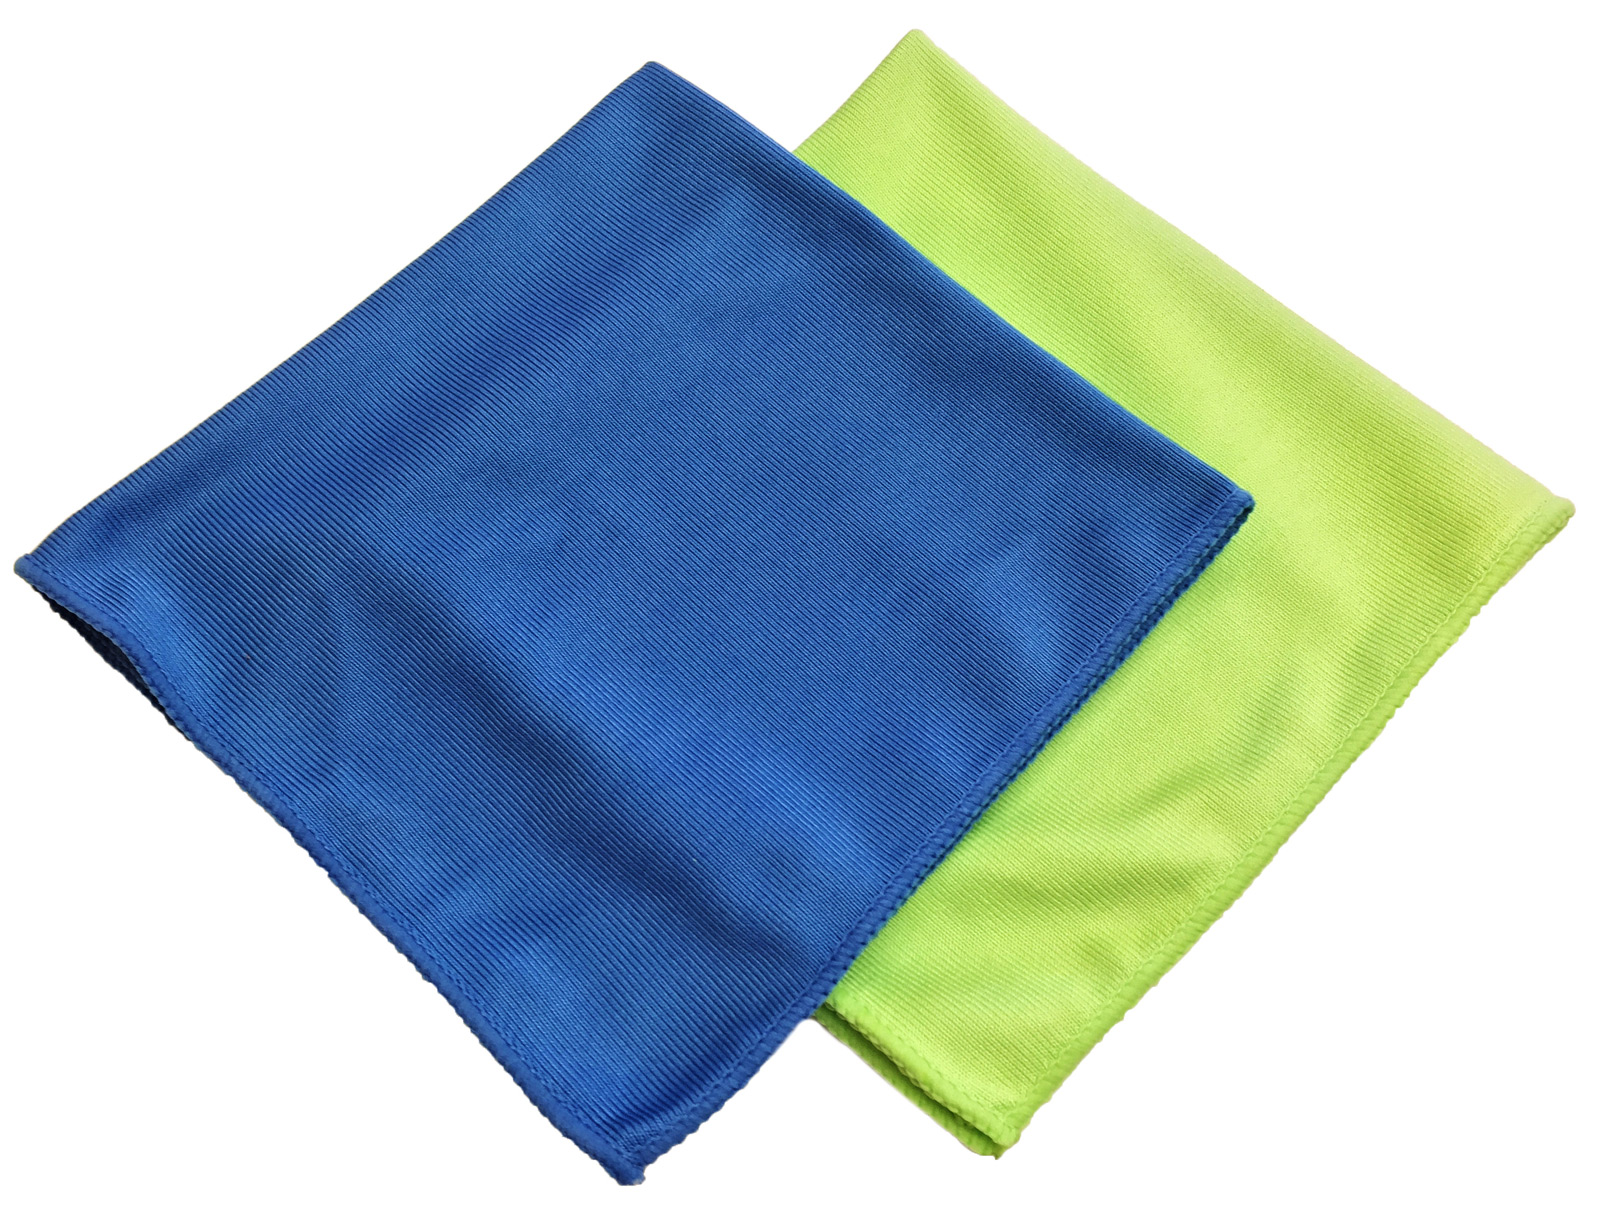 16 X16 Glass Cloth Microfiber 300gsm